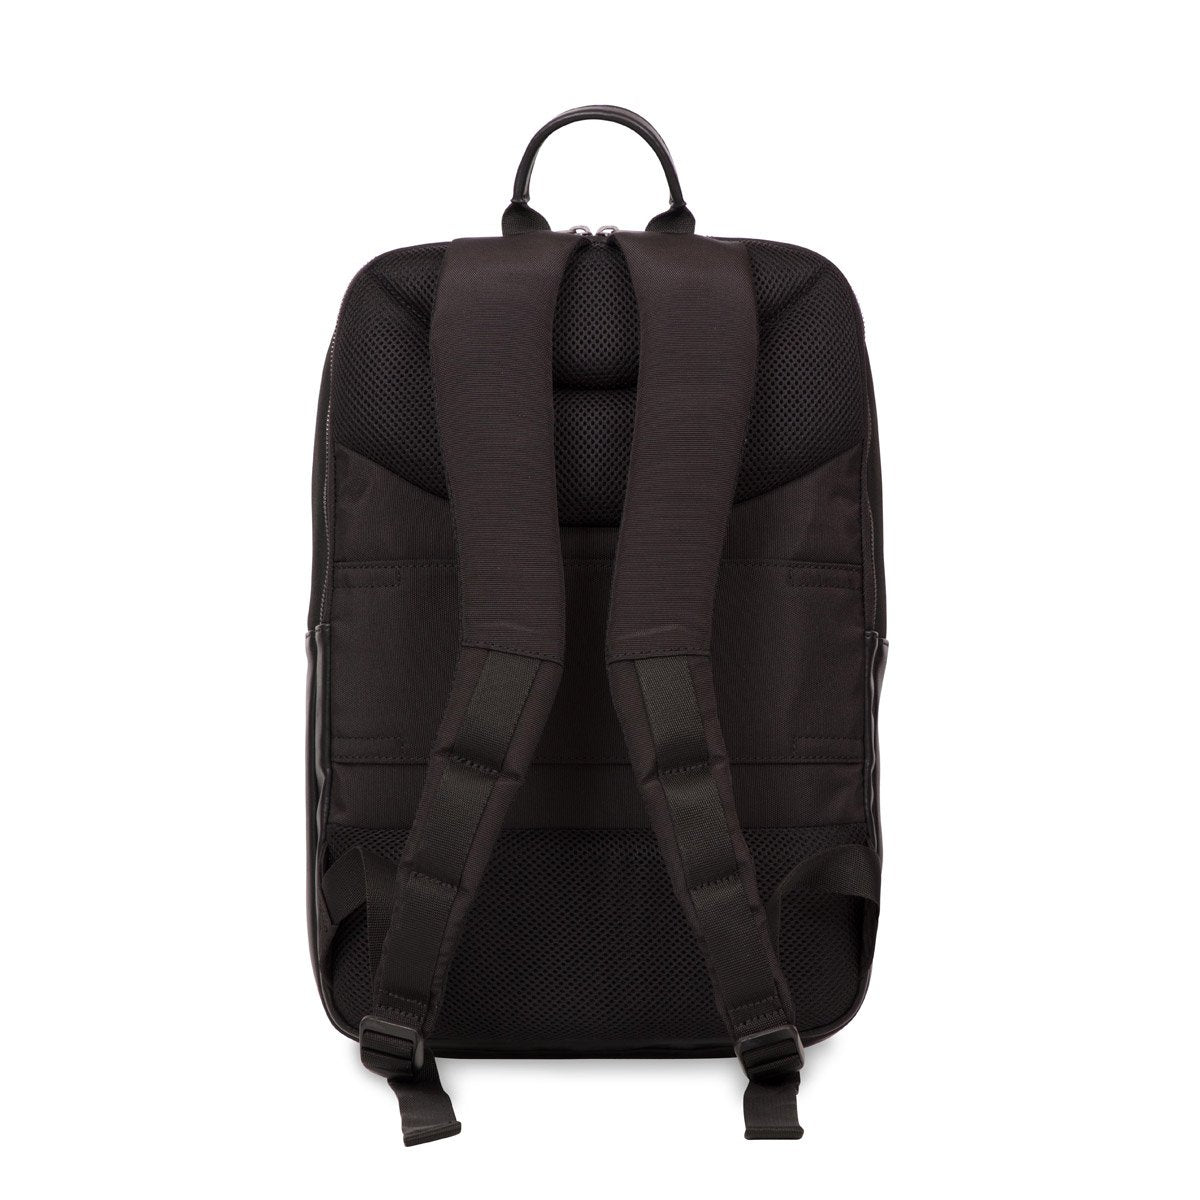 "Southampton Laptop Backpack - 15.6"" -  15.6"" 